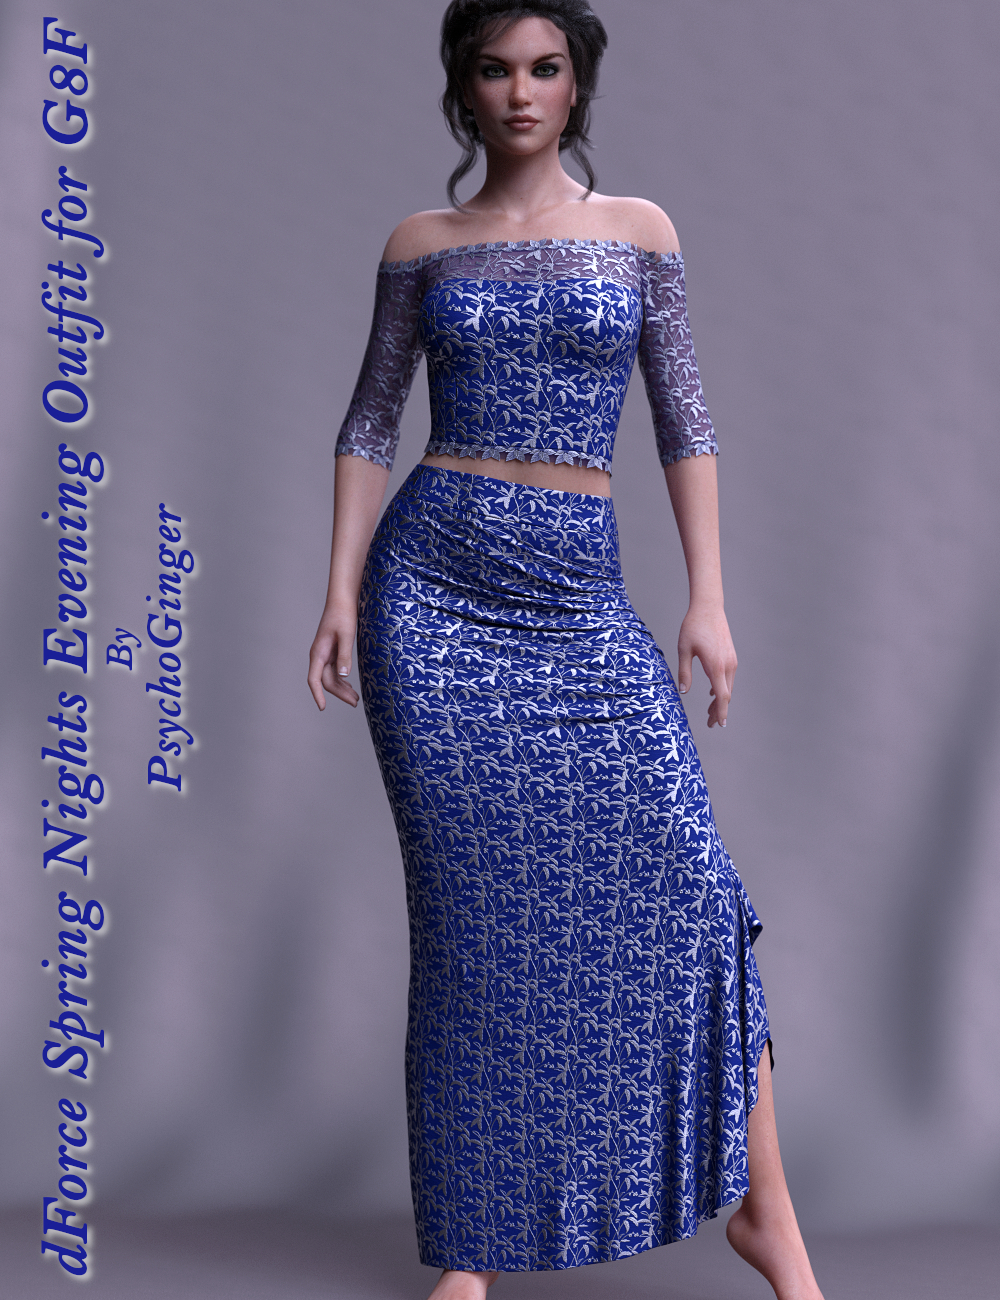 dForce Spring Nights Evening Outfit for G8F by PsychoGinger